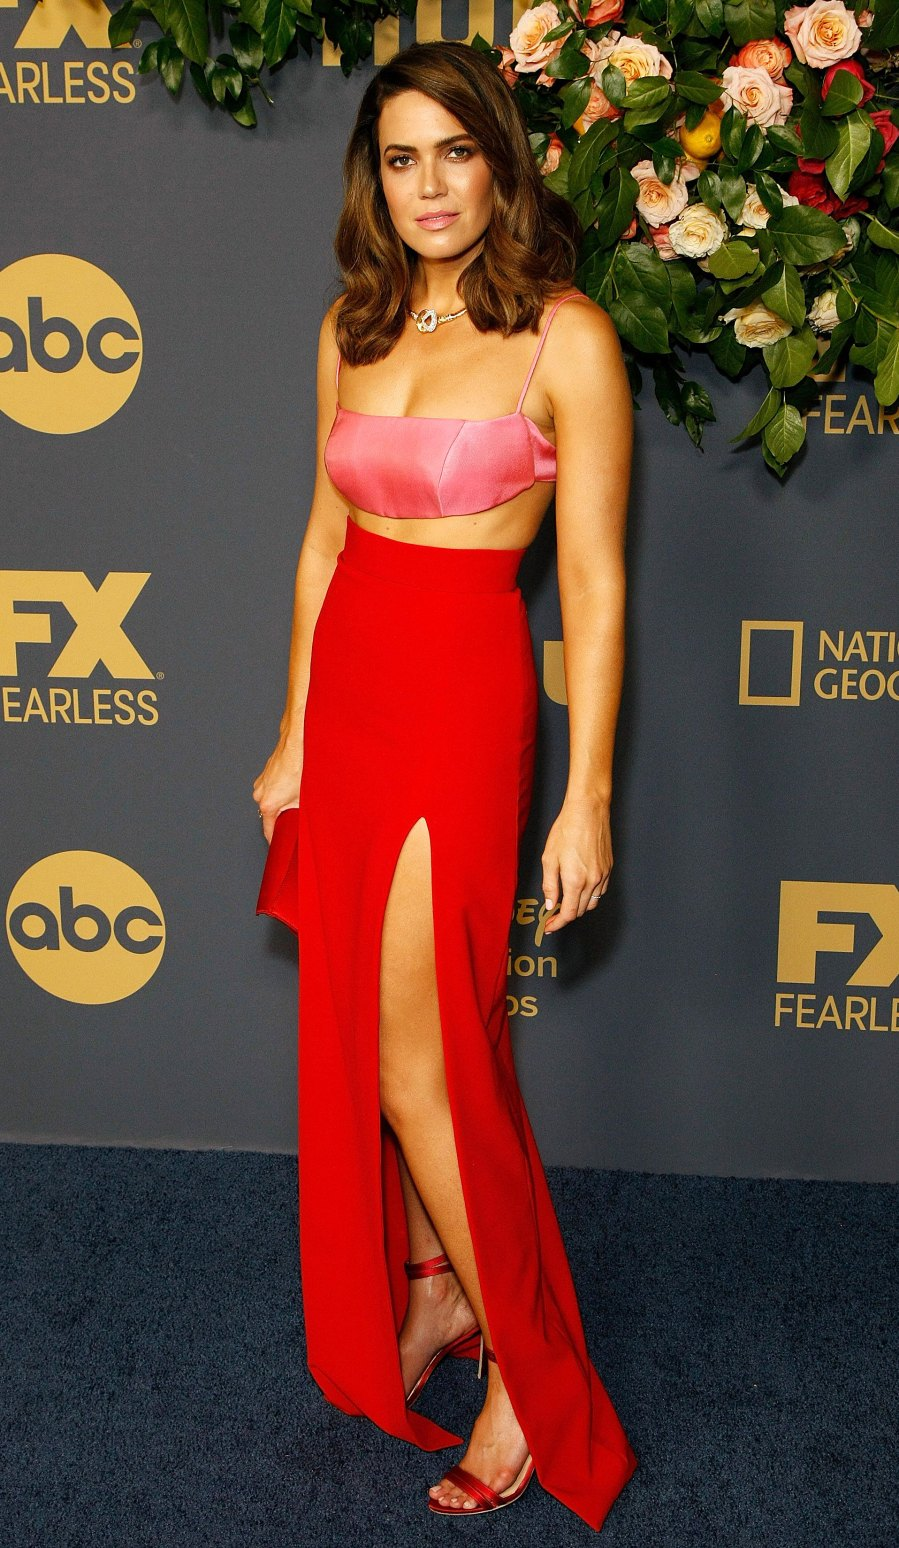 Emmys After Parties - Mandy Moore